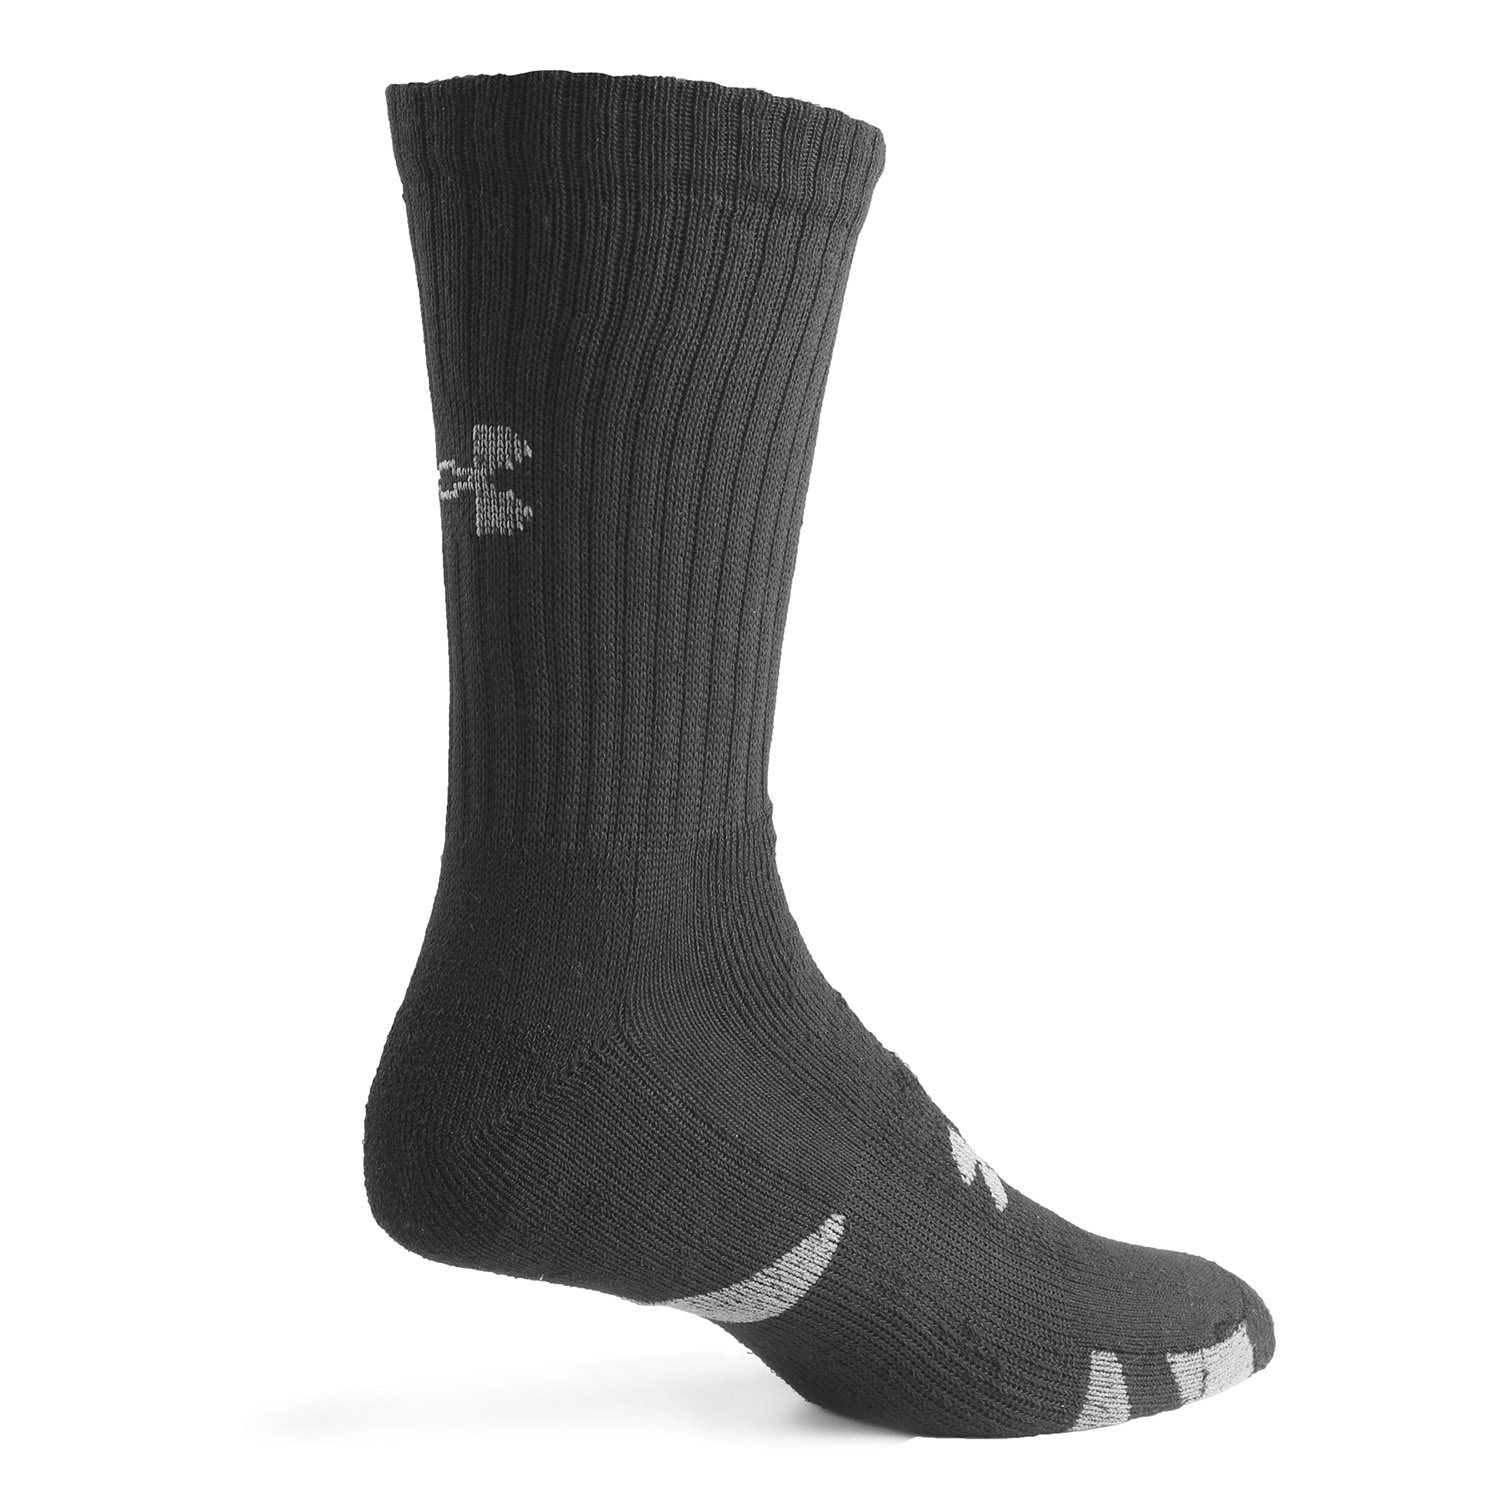 Under Armour Crew Socks 4 pack